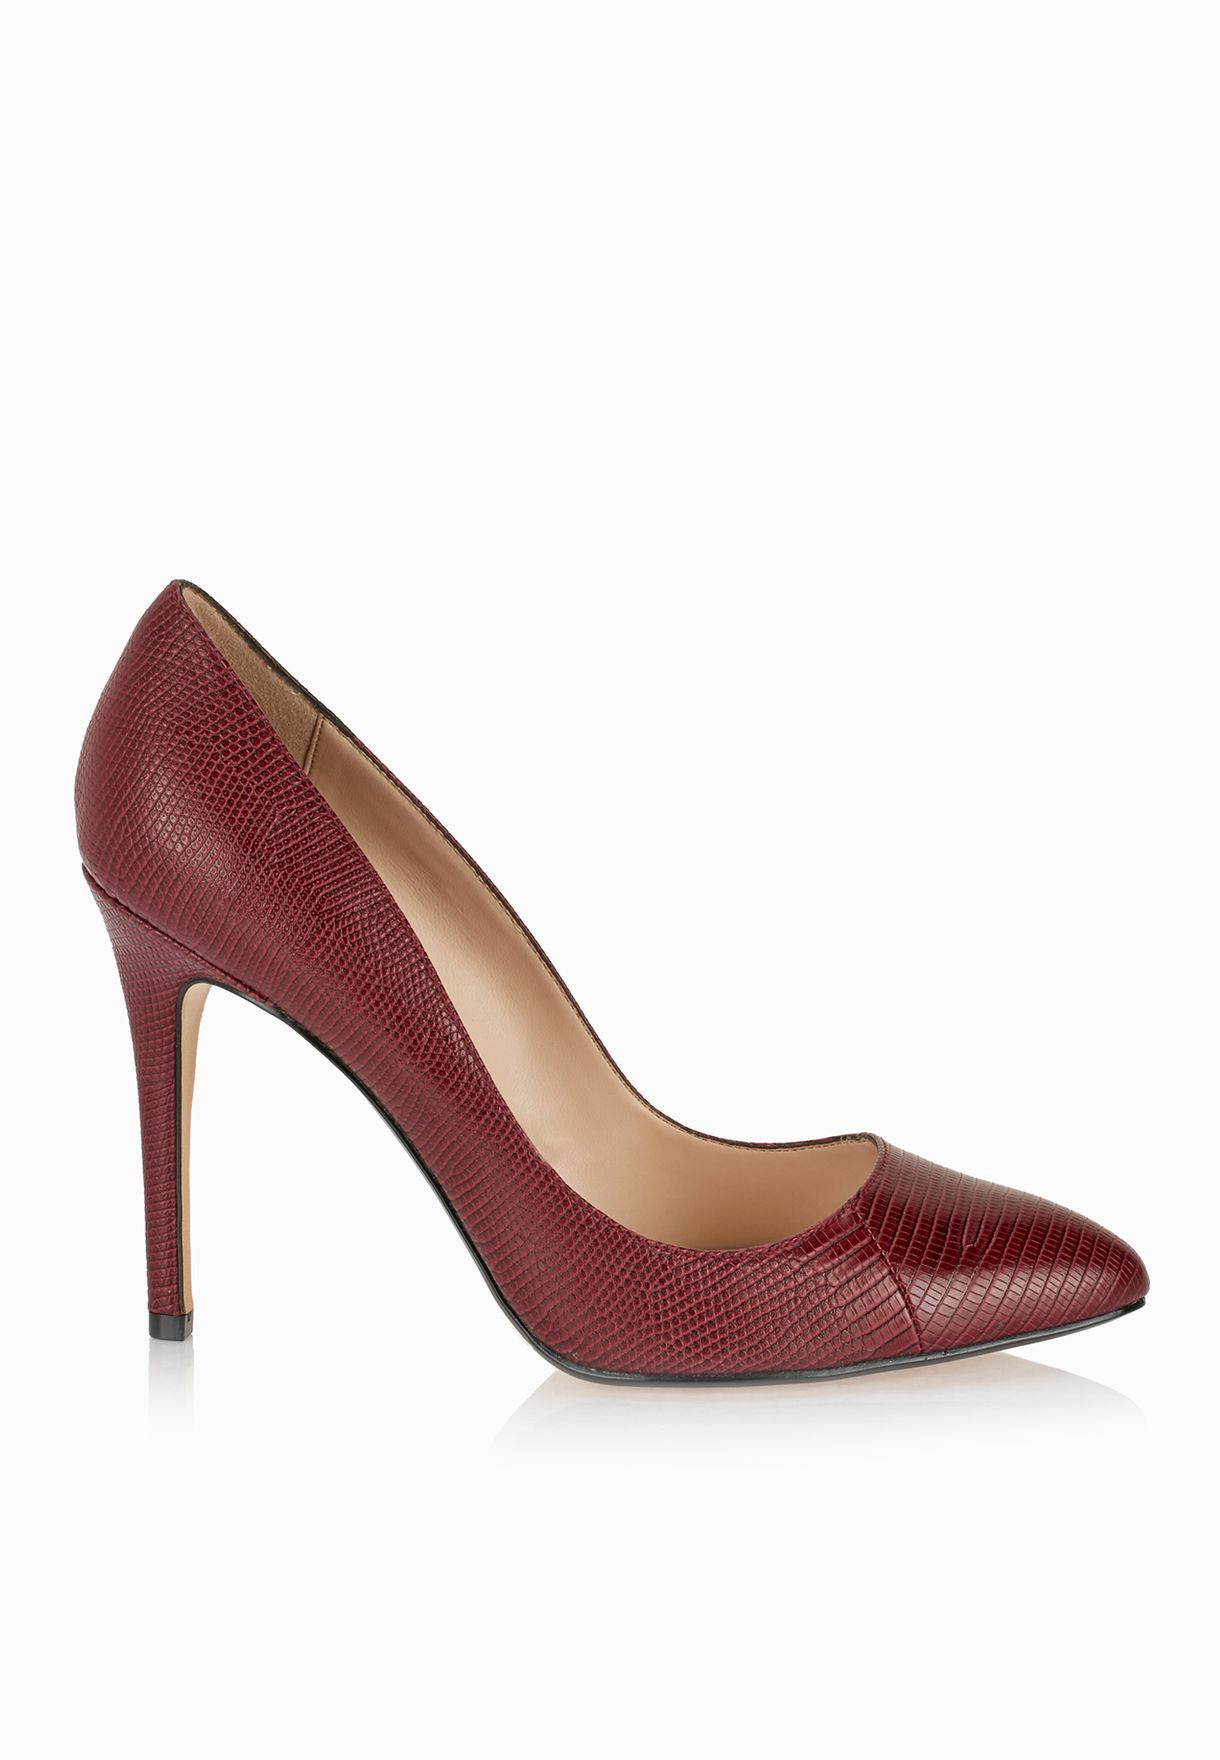 a579a88710 Shop Mango burgundy Mia Snake Finish Pumps 74045014 for Women in ...